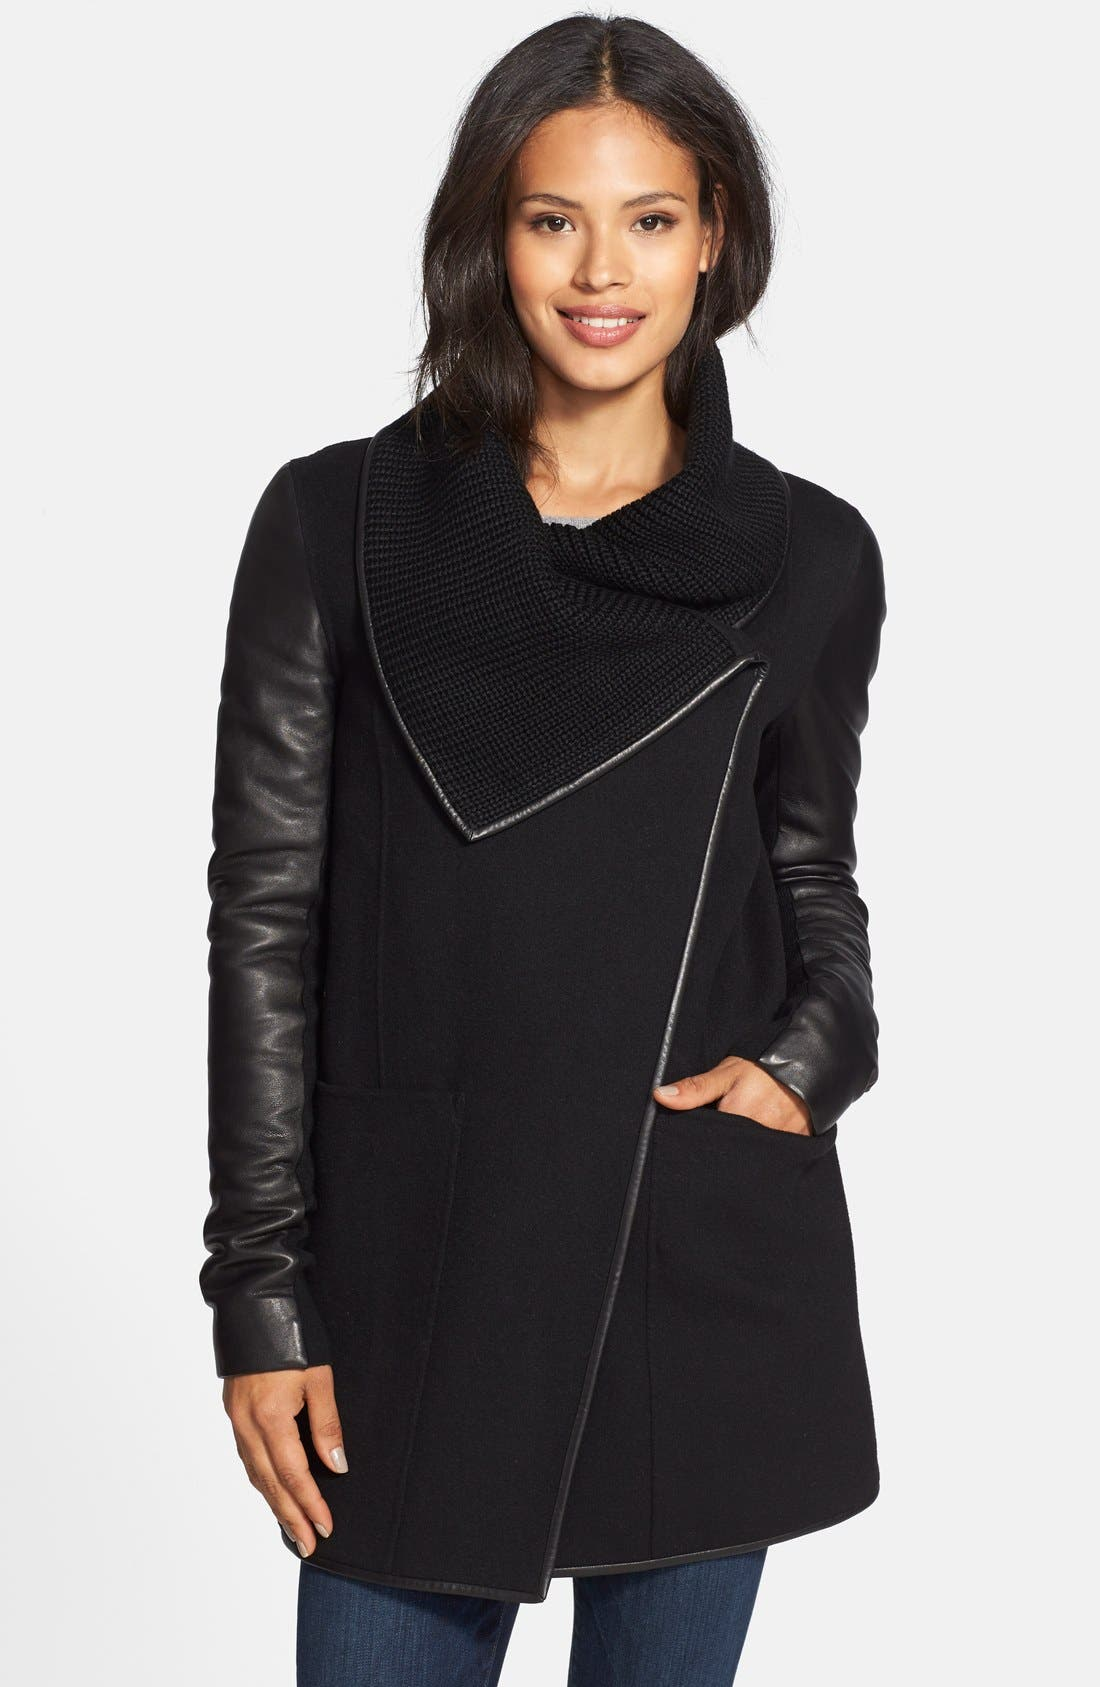 Alternate Image 1 Selected - Mackage Double Face Wool Blend Coat with Knit Collar & Leather Trim